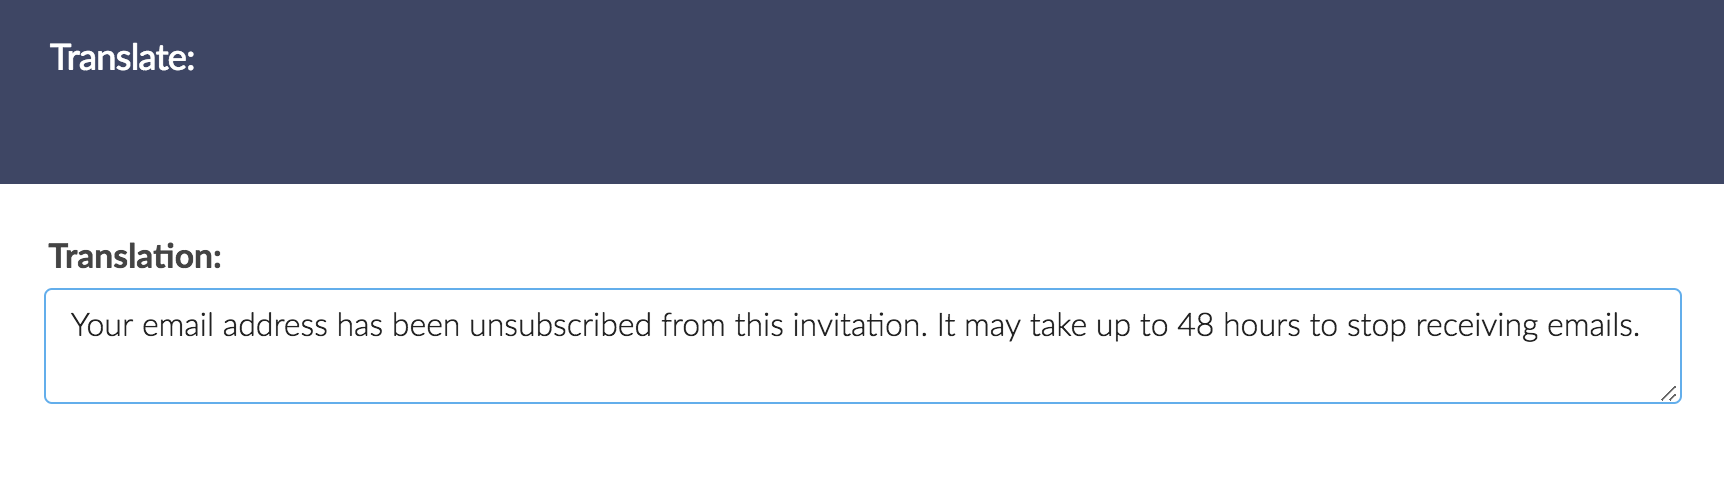 Translate Unsubscribe Confirmation Message